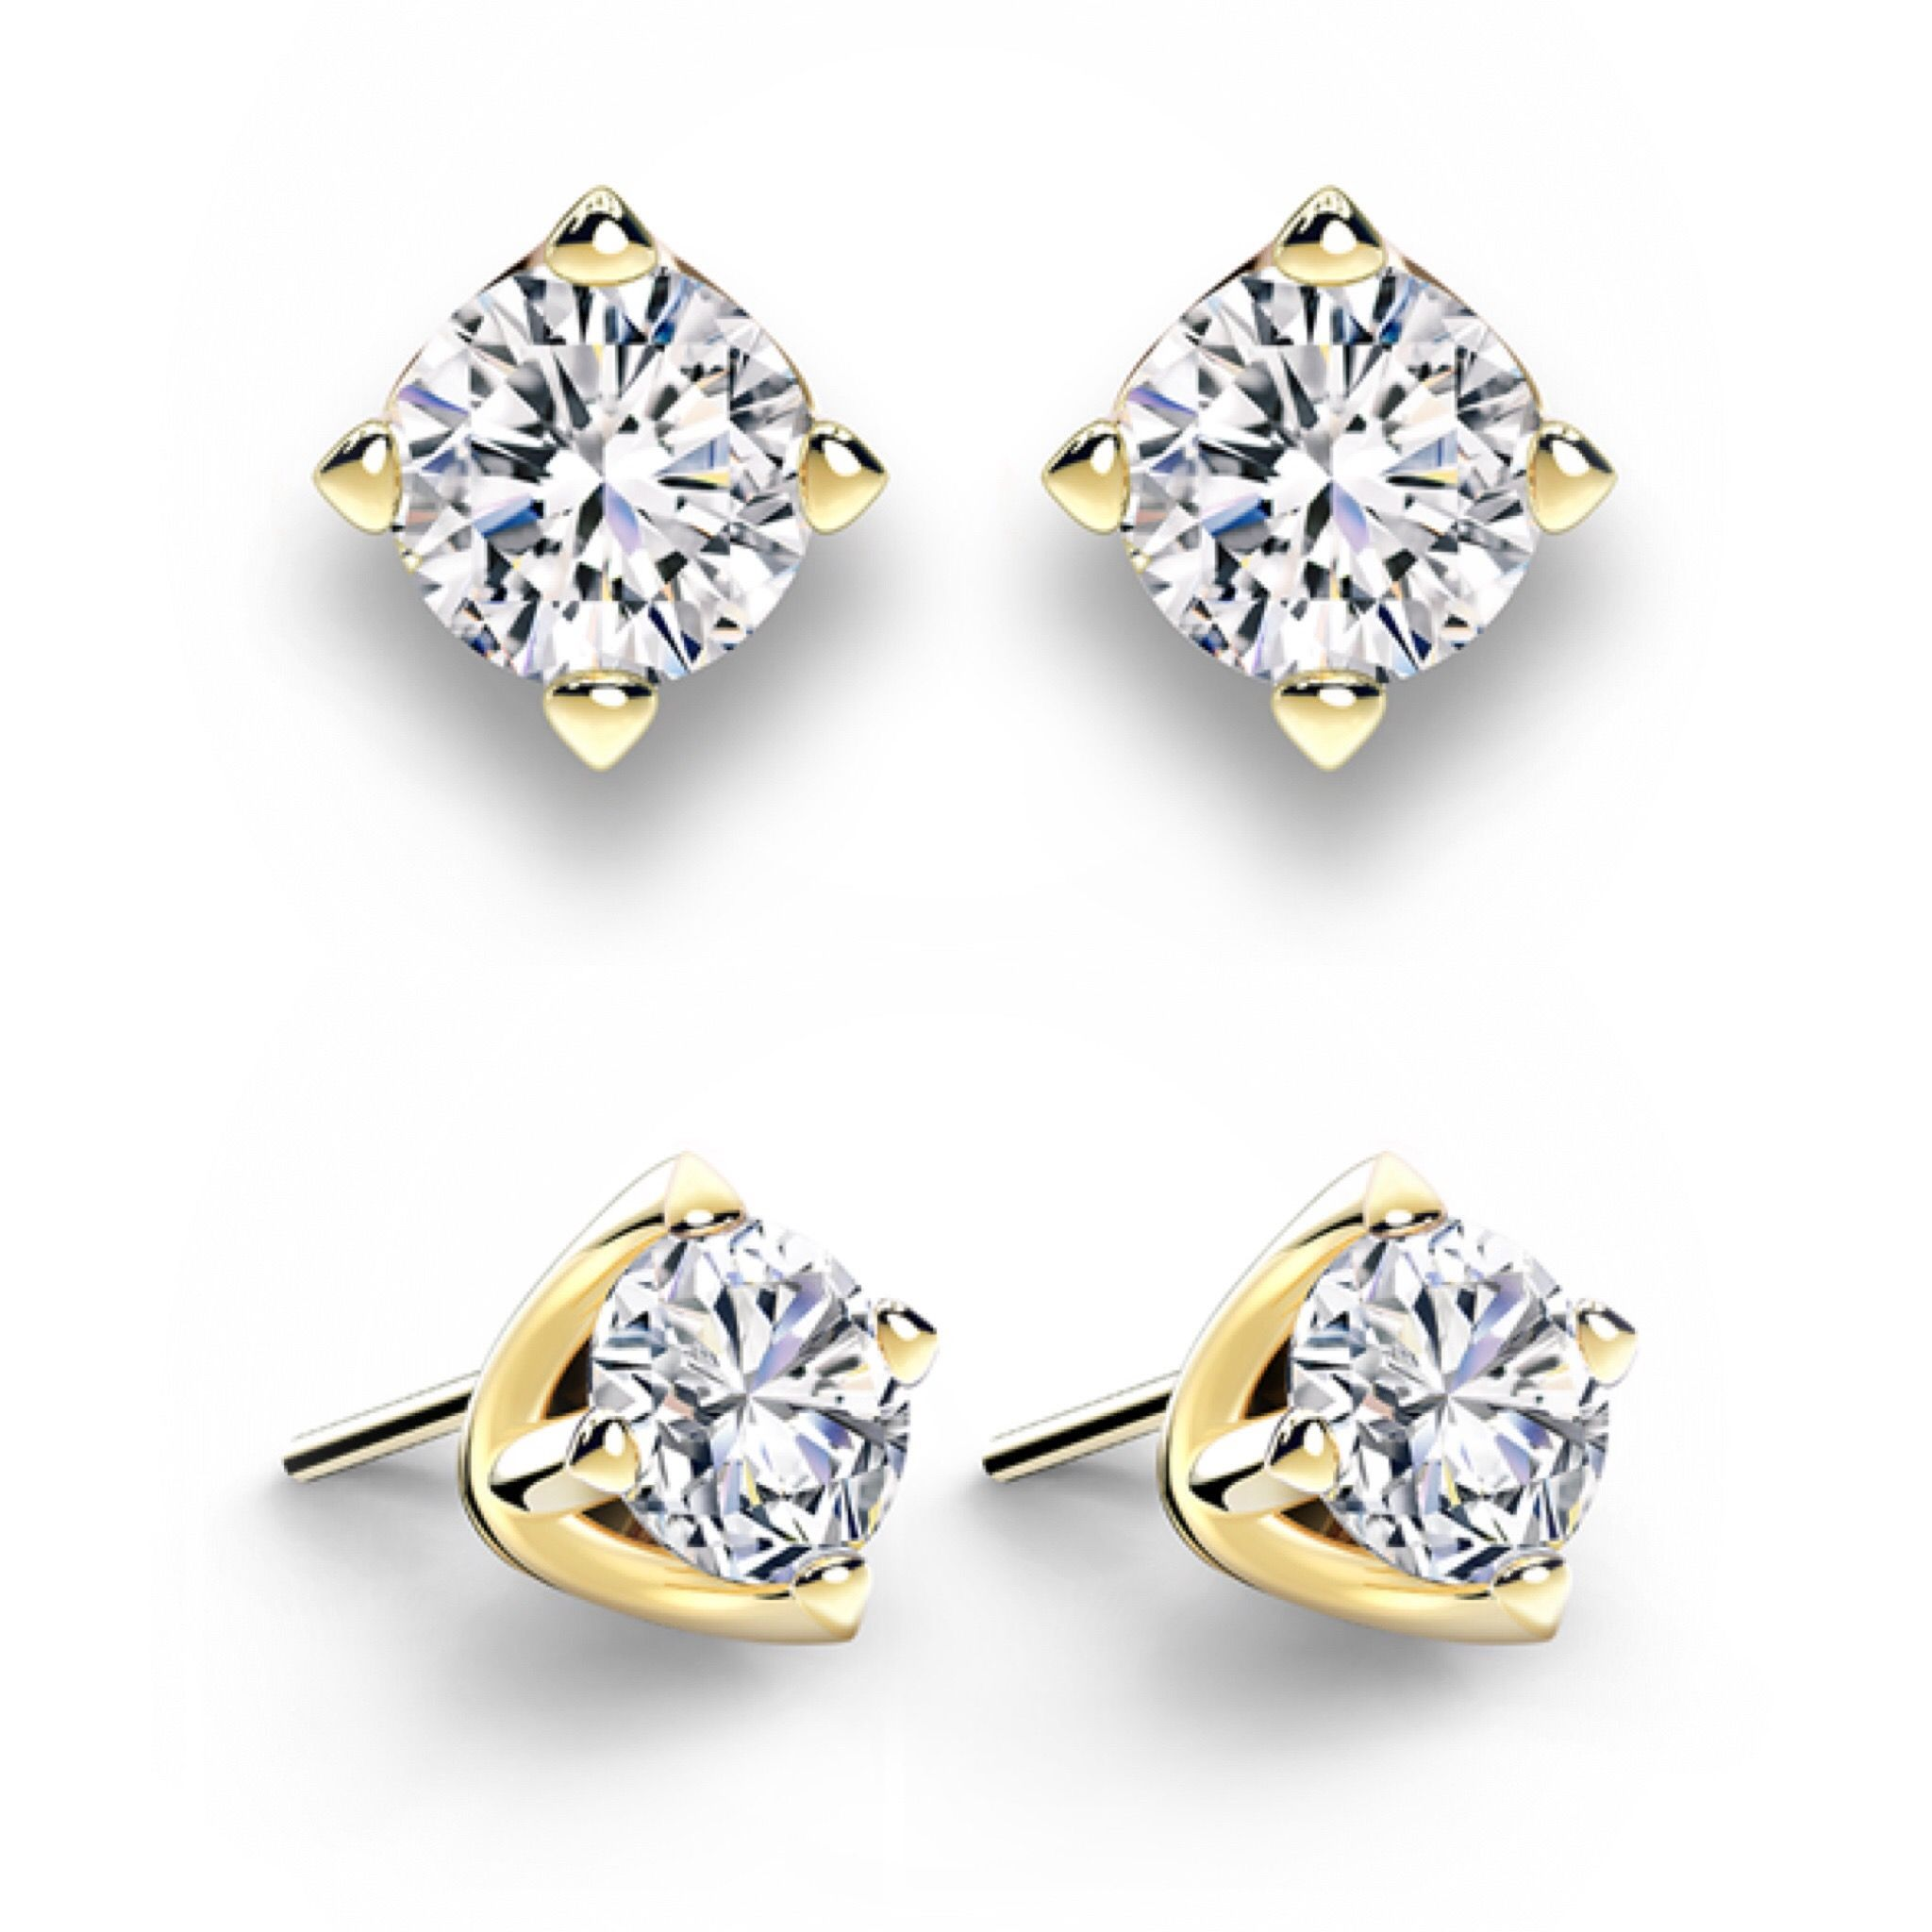 zquez velazquez wg solitaire y carrera canada add earrings vel diamonds product arrera with